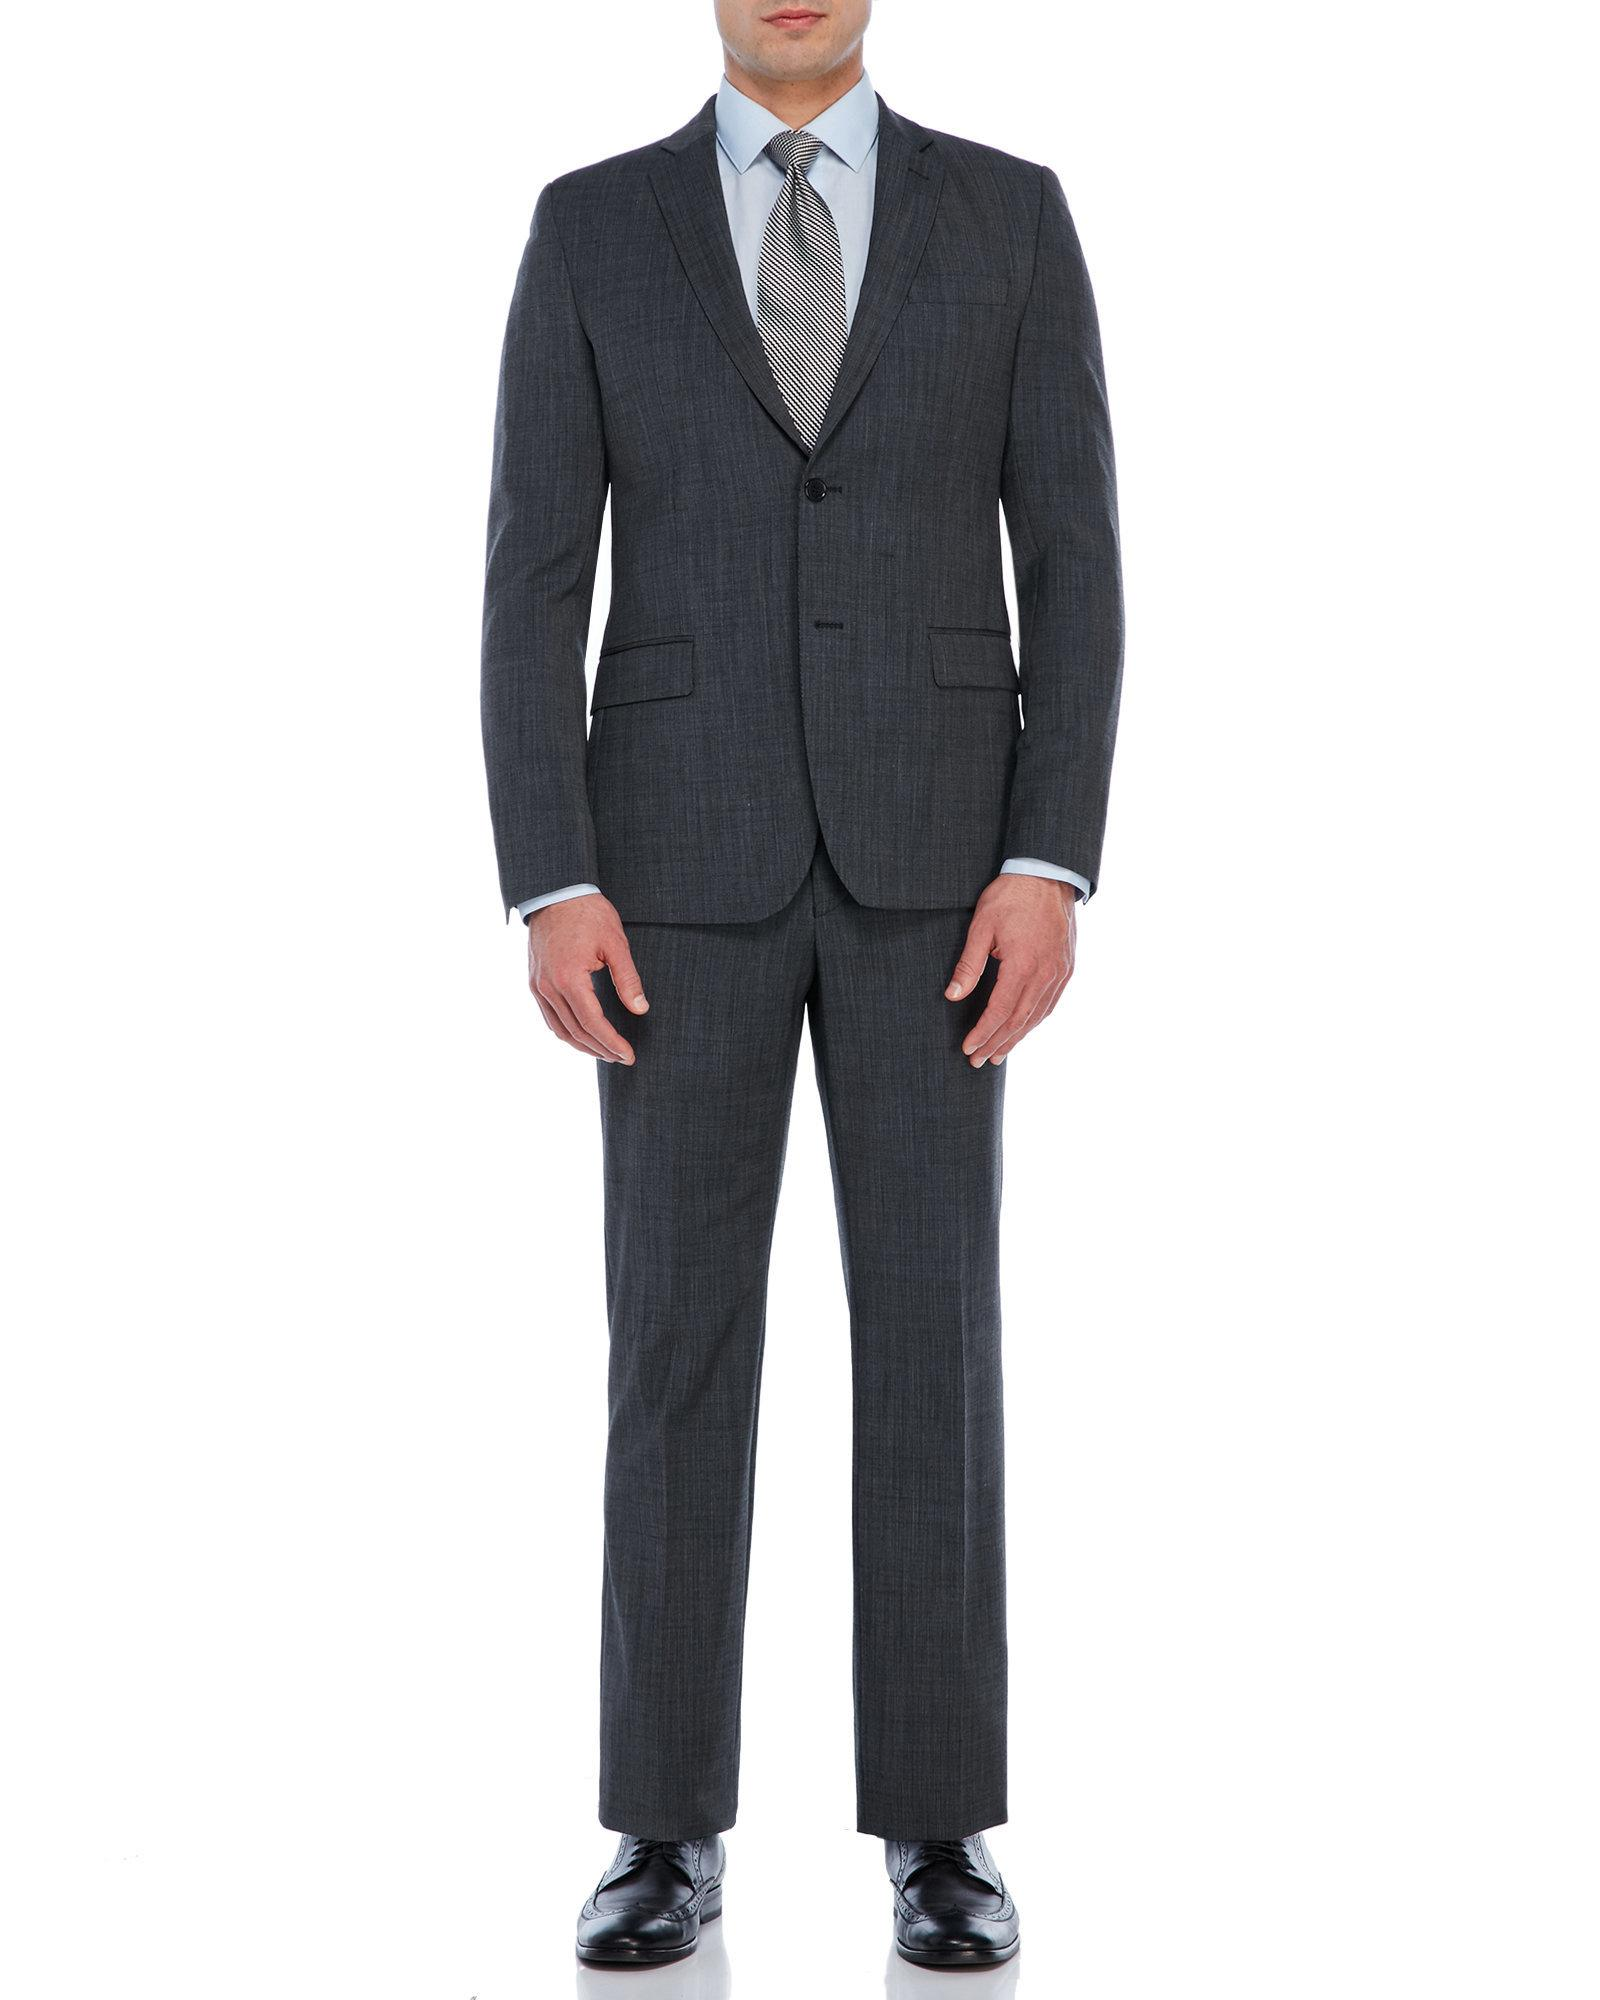 bdb81f93 Lyst - Versace Black Pindot Suit in Black for Men